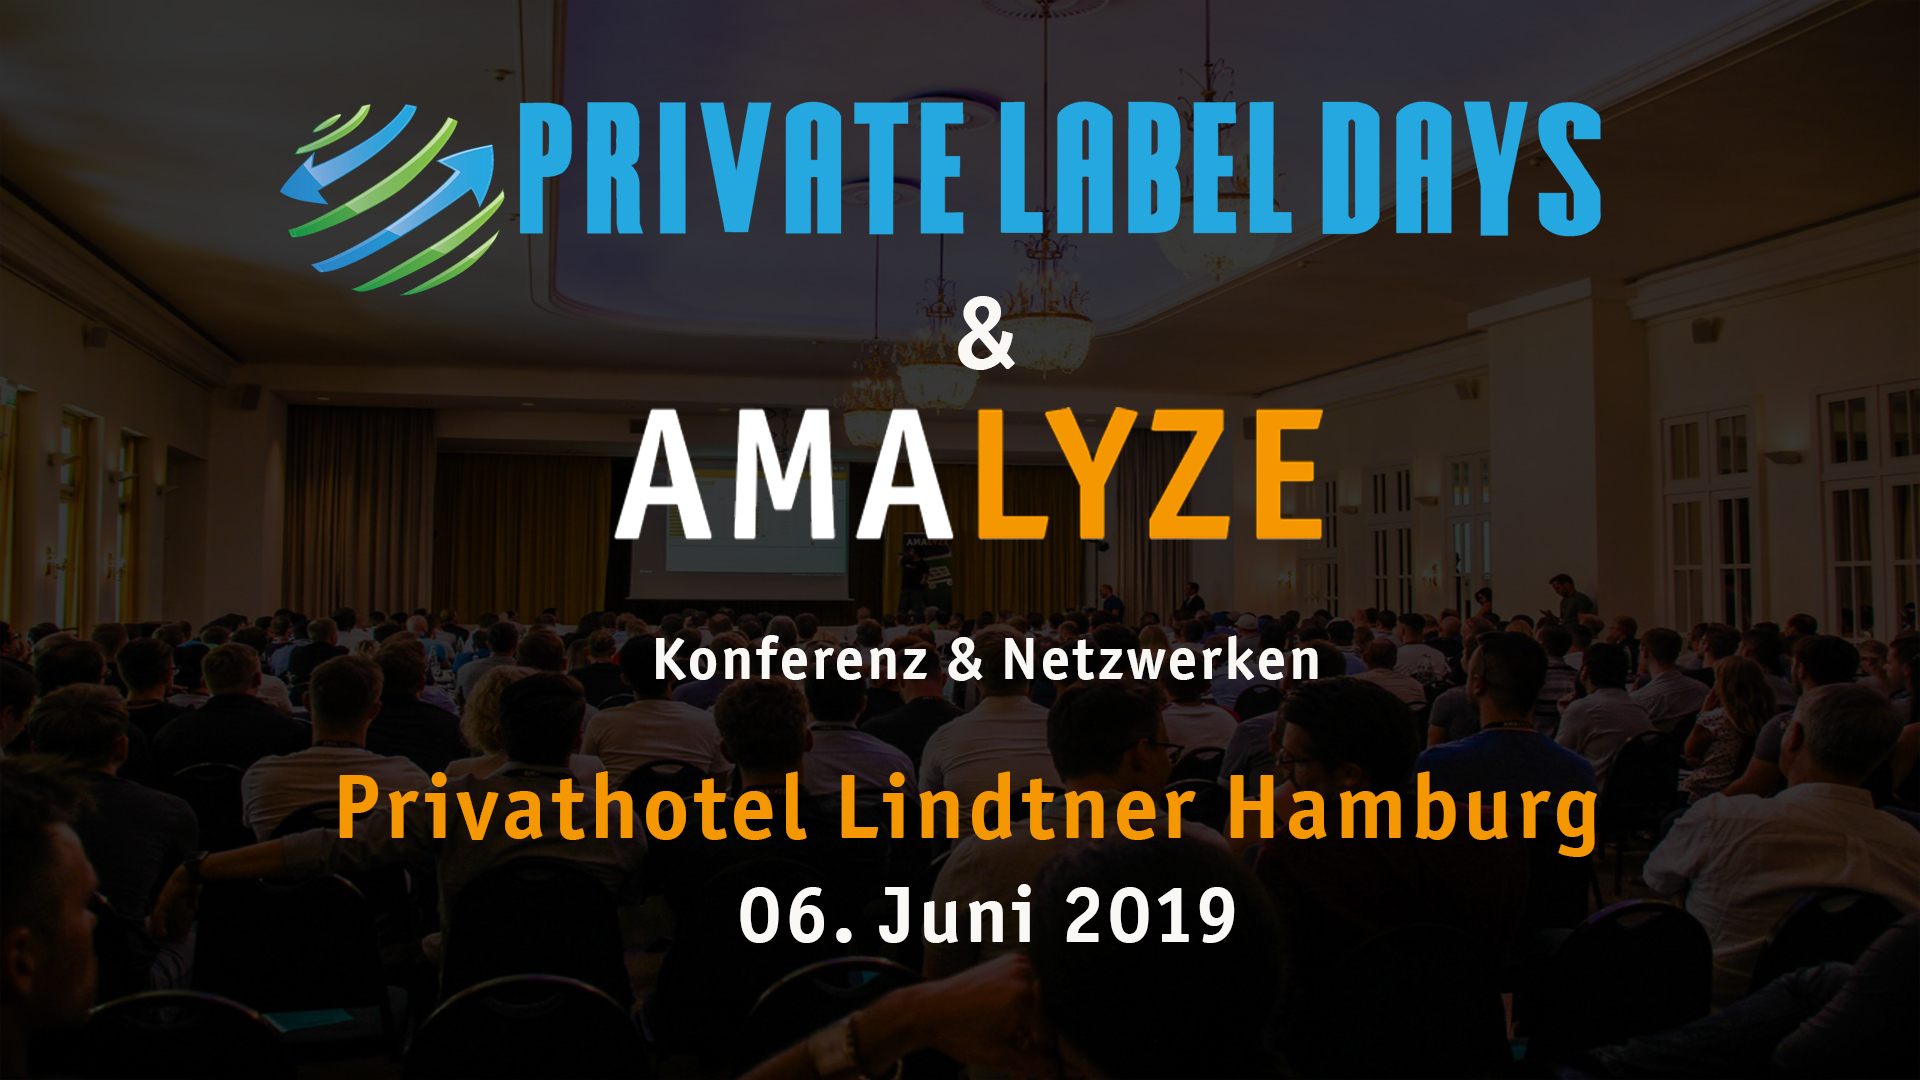 Amazon Konferenz - Private Label Days AMALYZE 2019